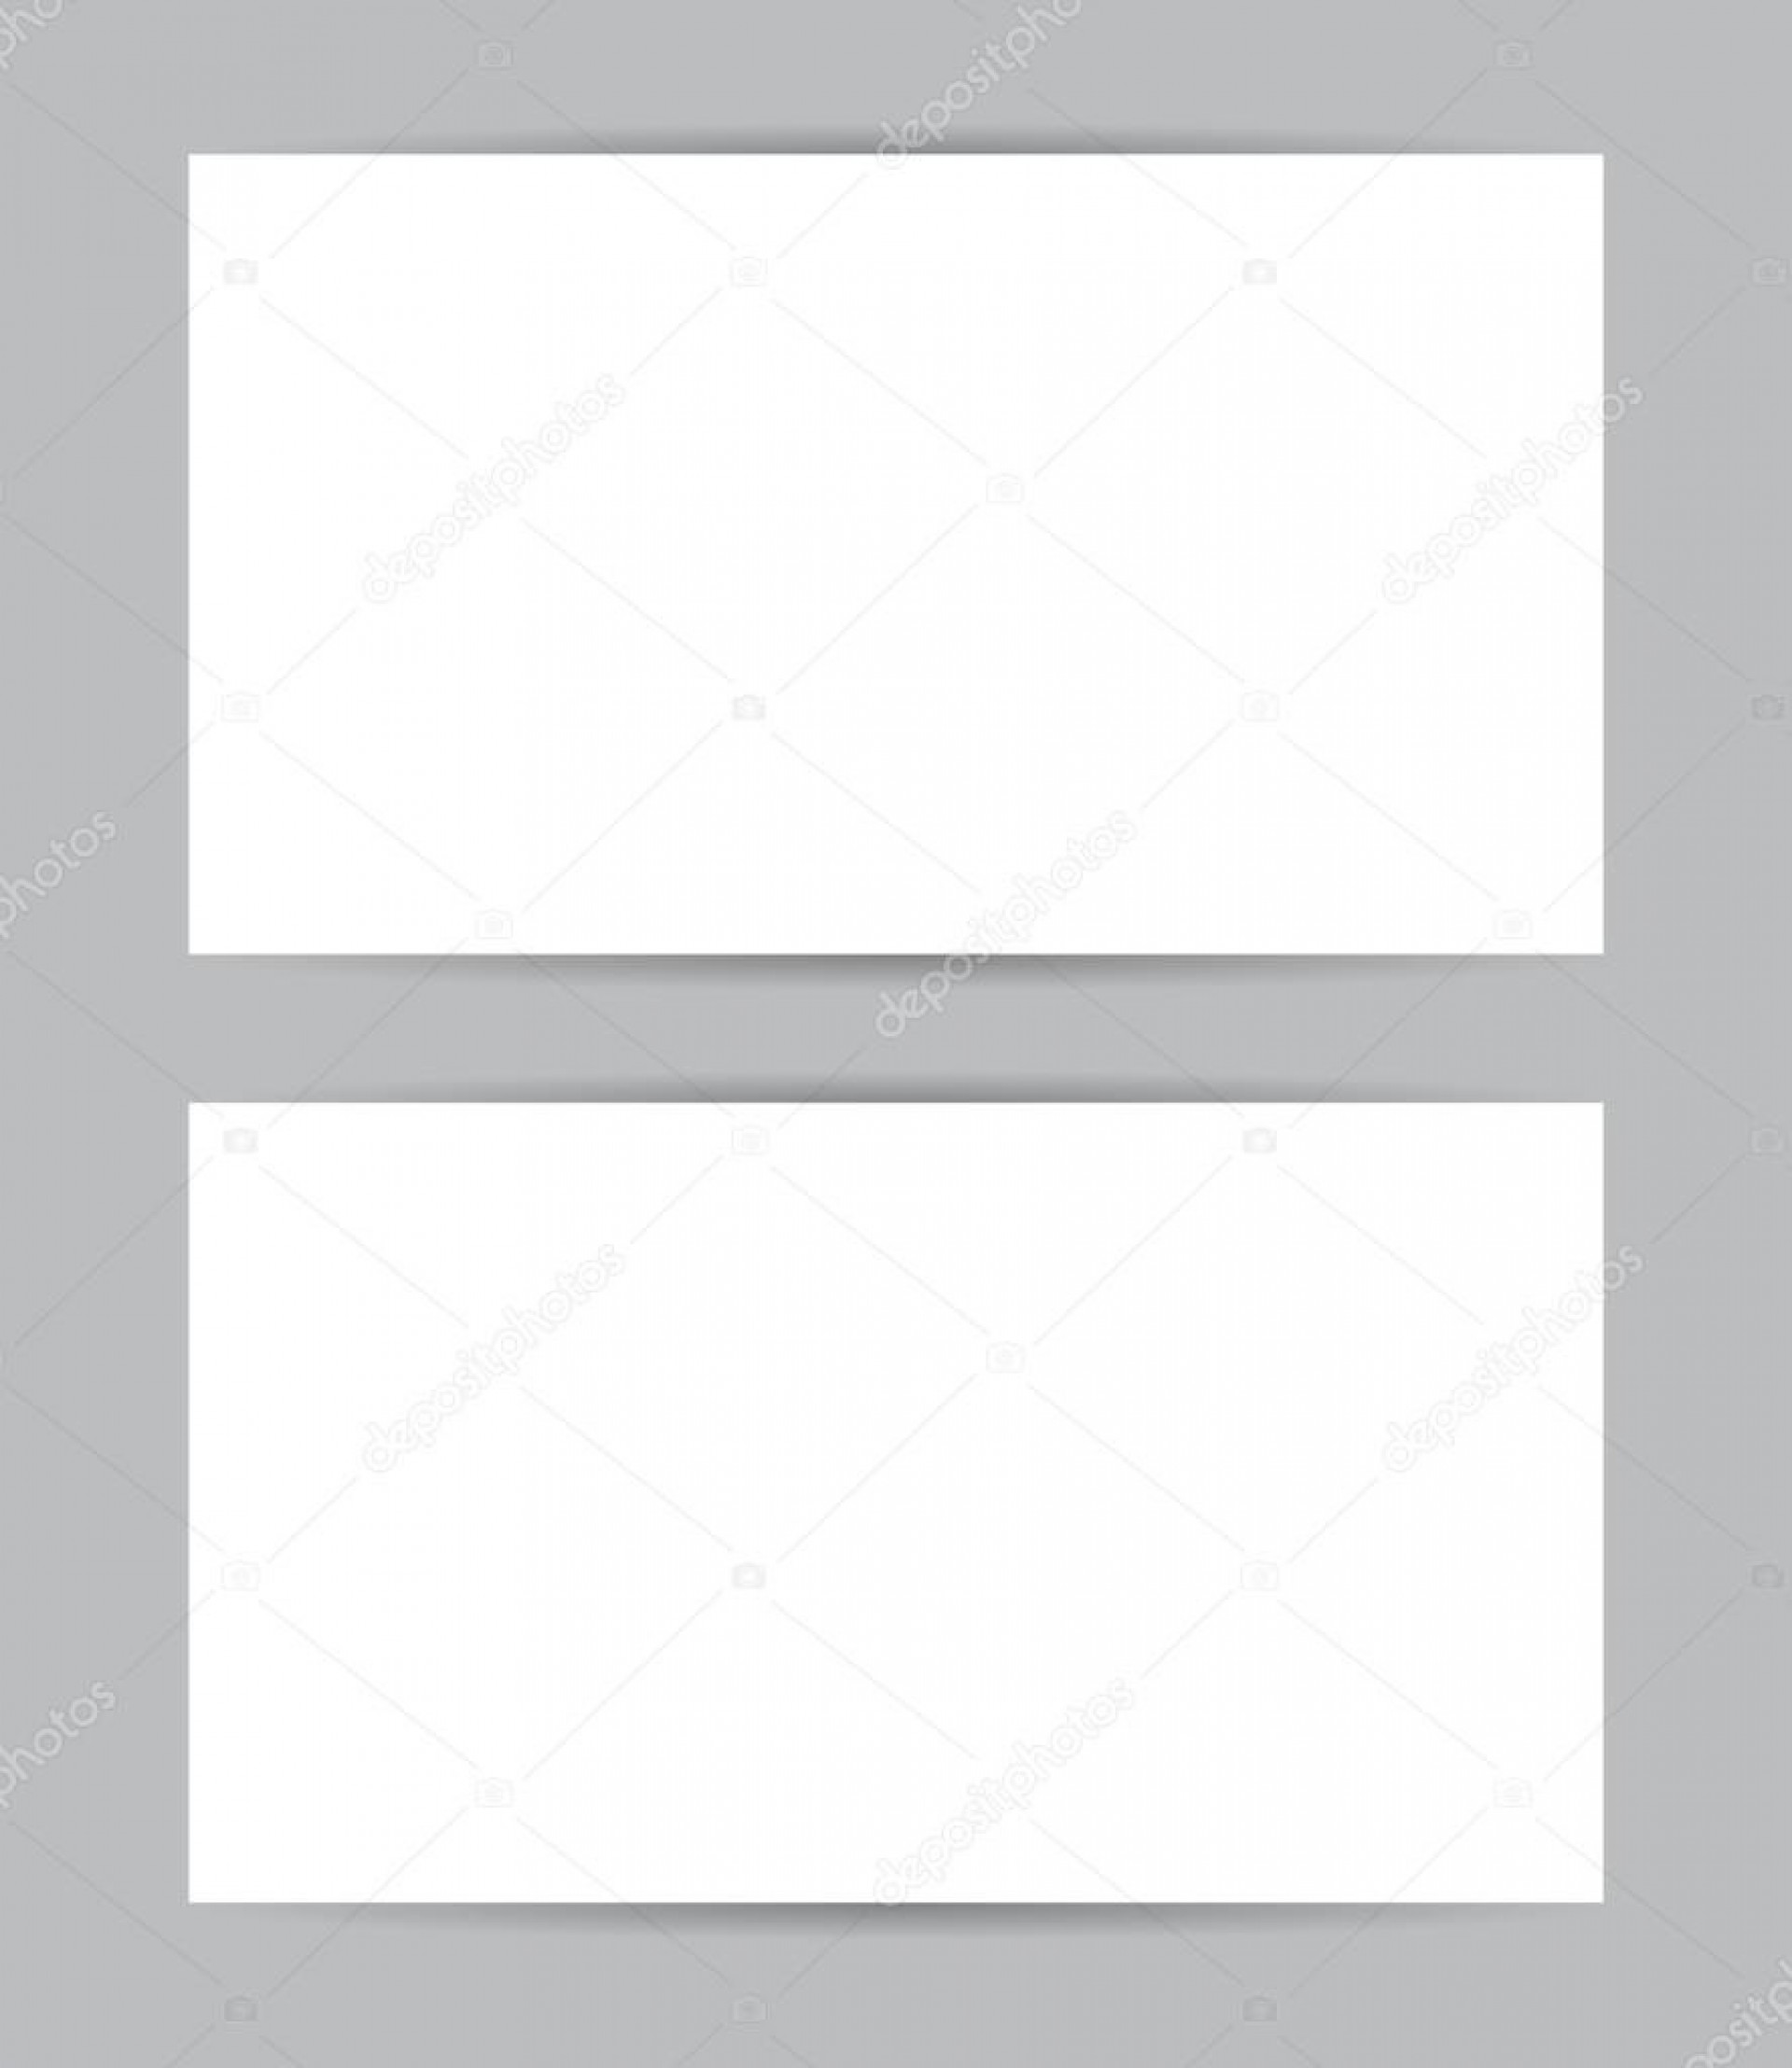 008 Incredible Busines Card Blank Template Example  Download Free1920